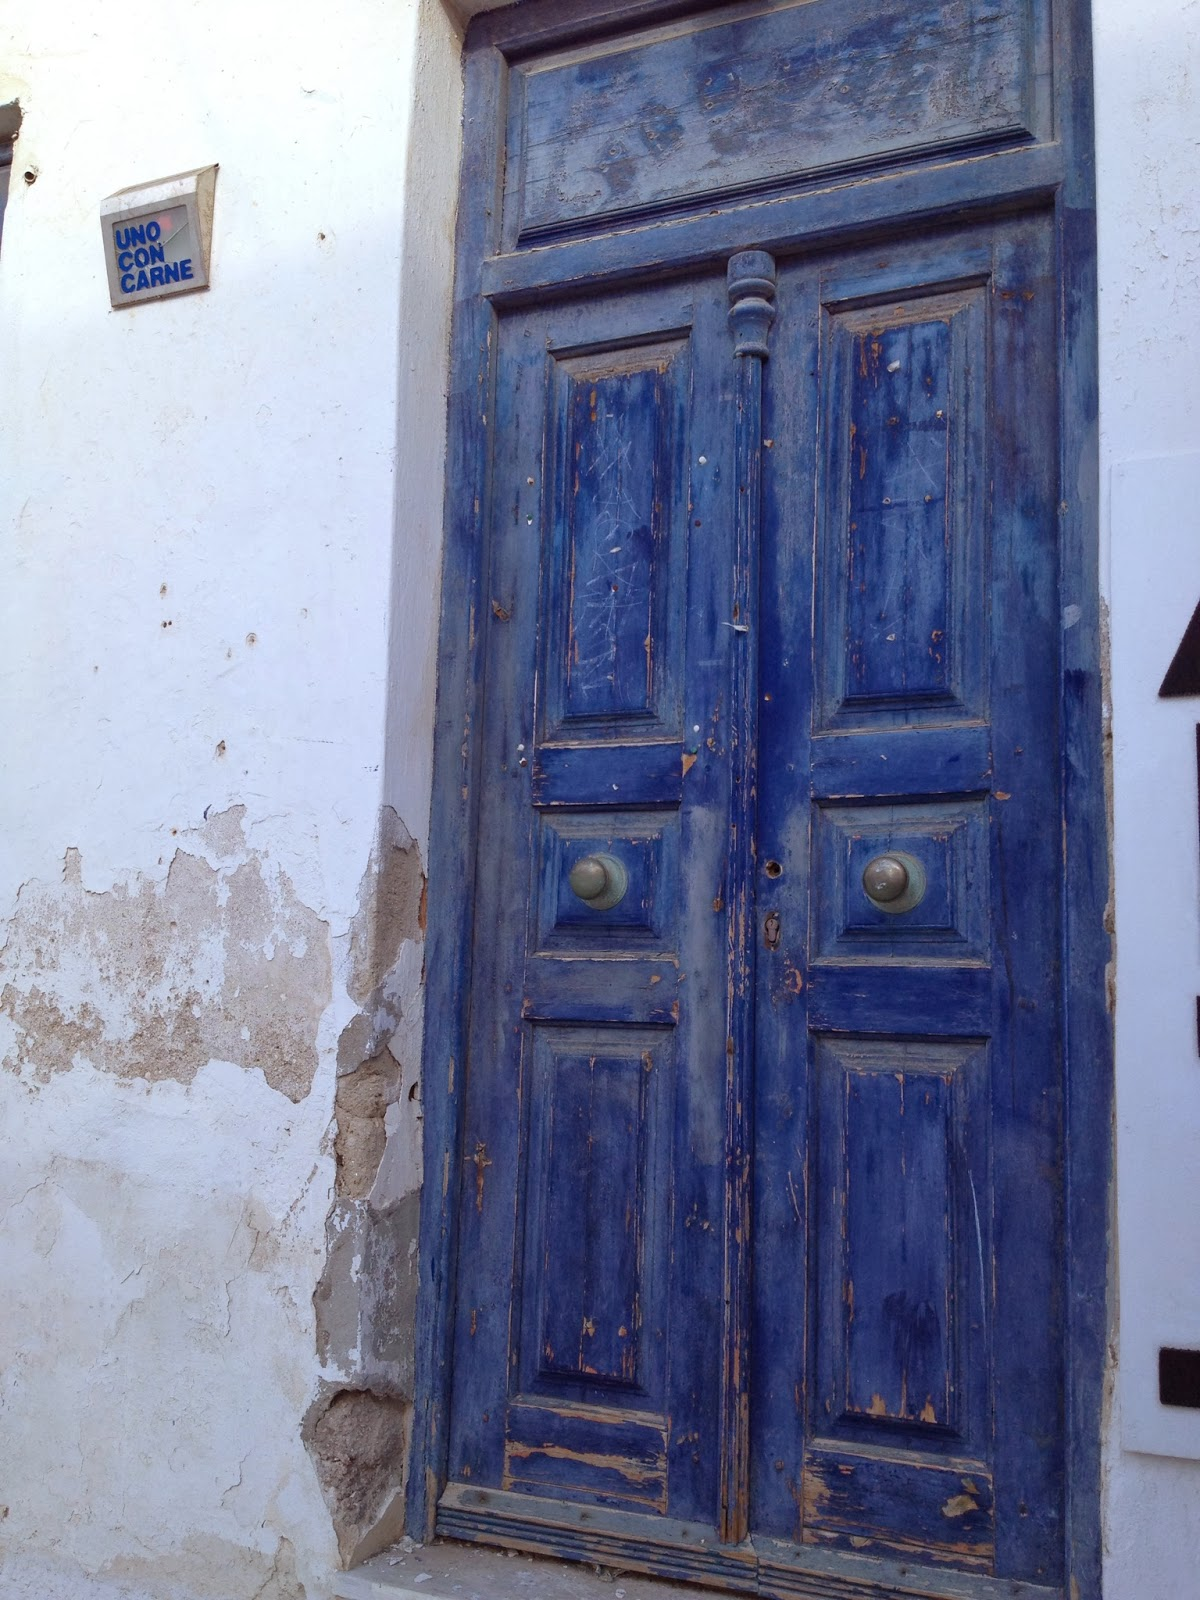 Mykonos - I love pictures of old doors